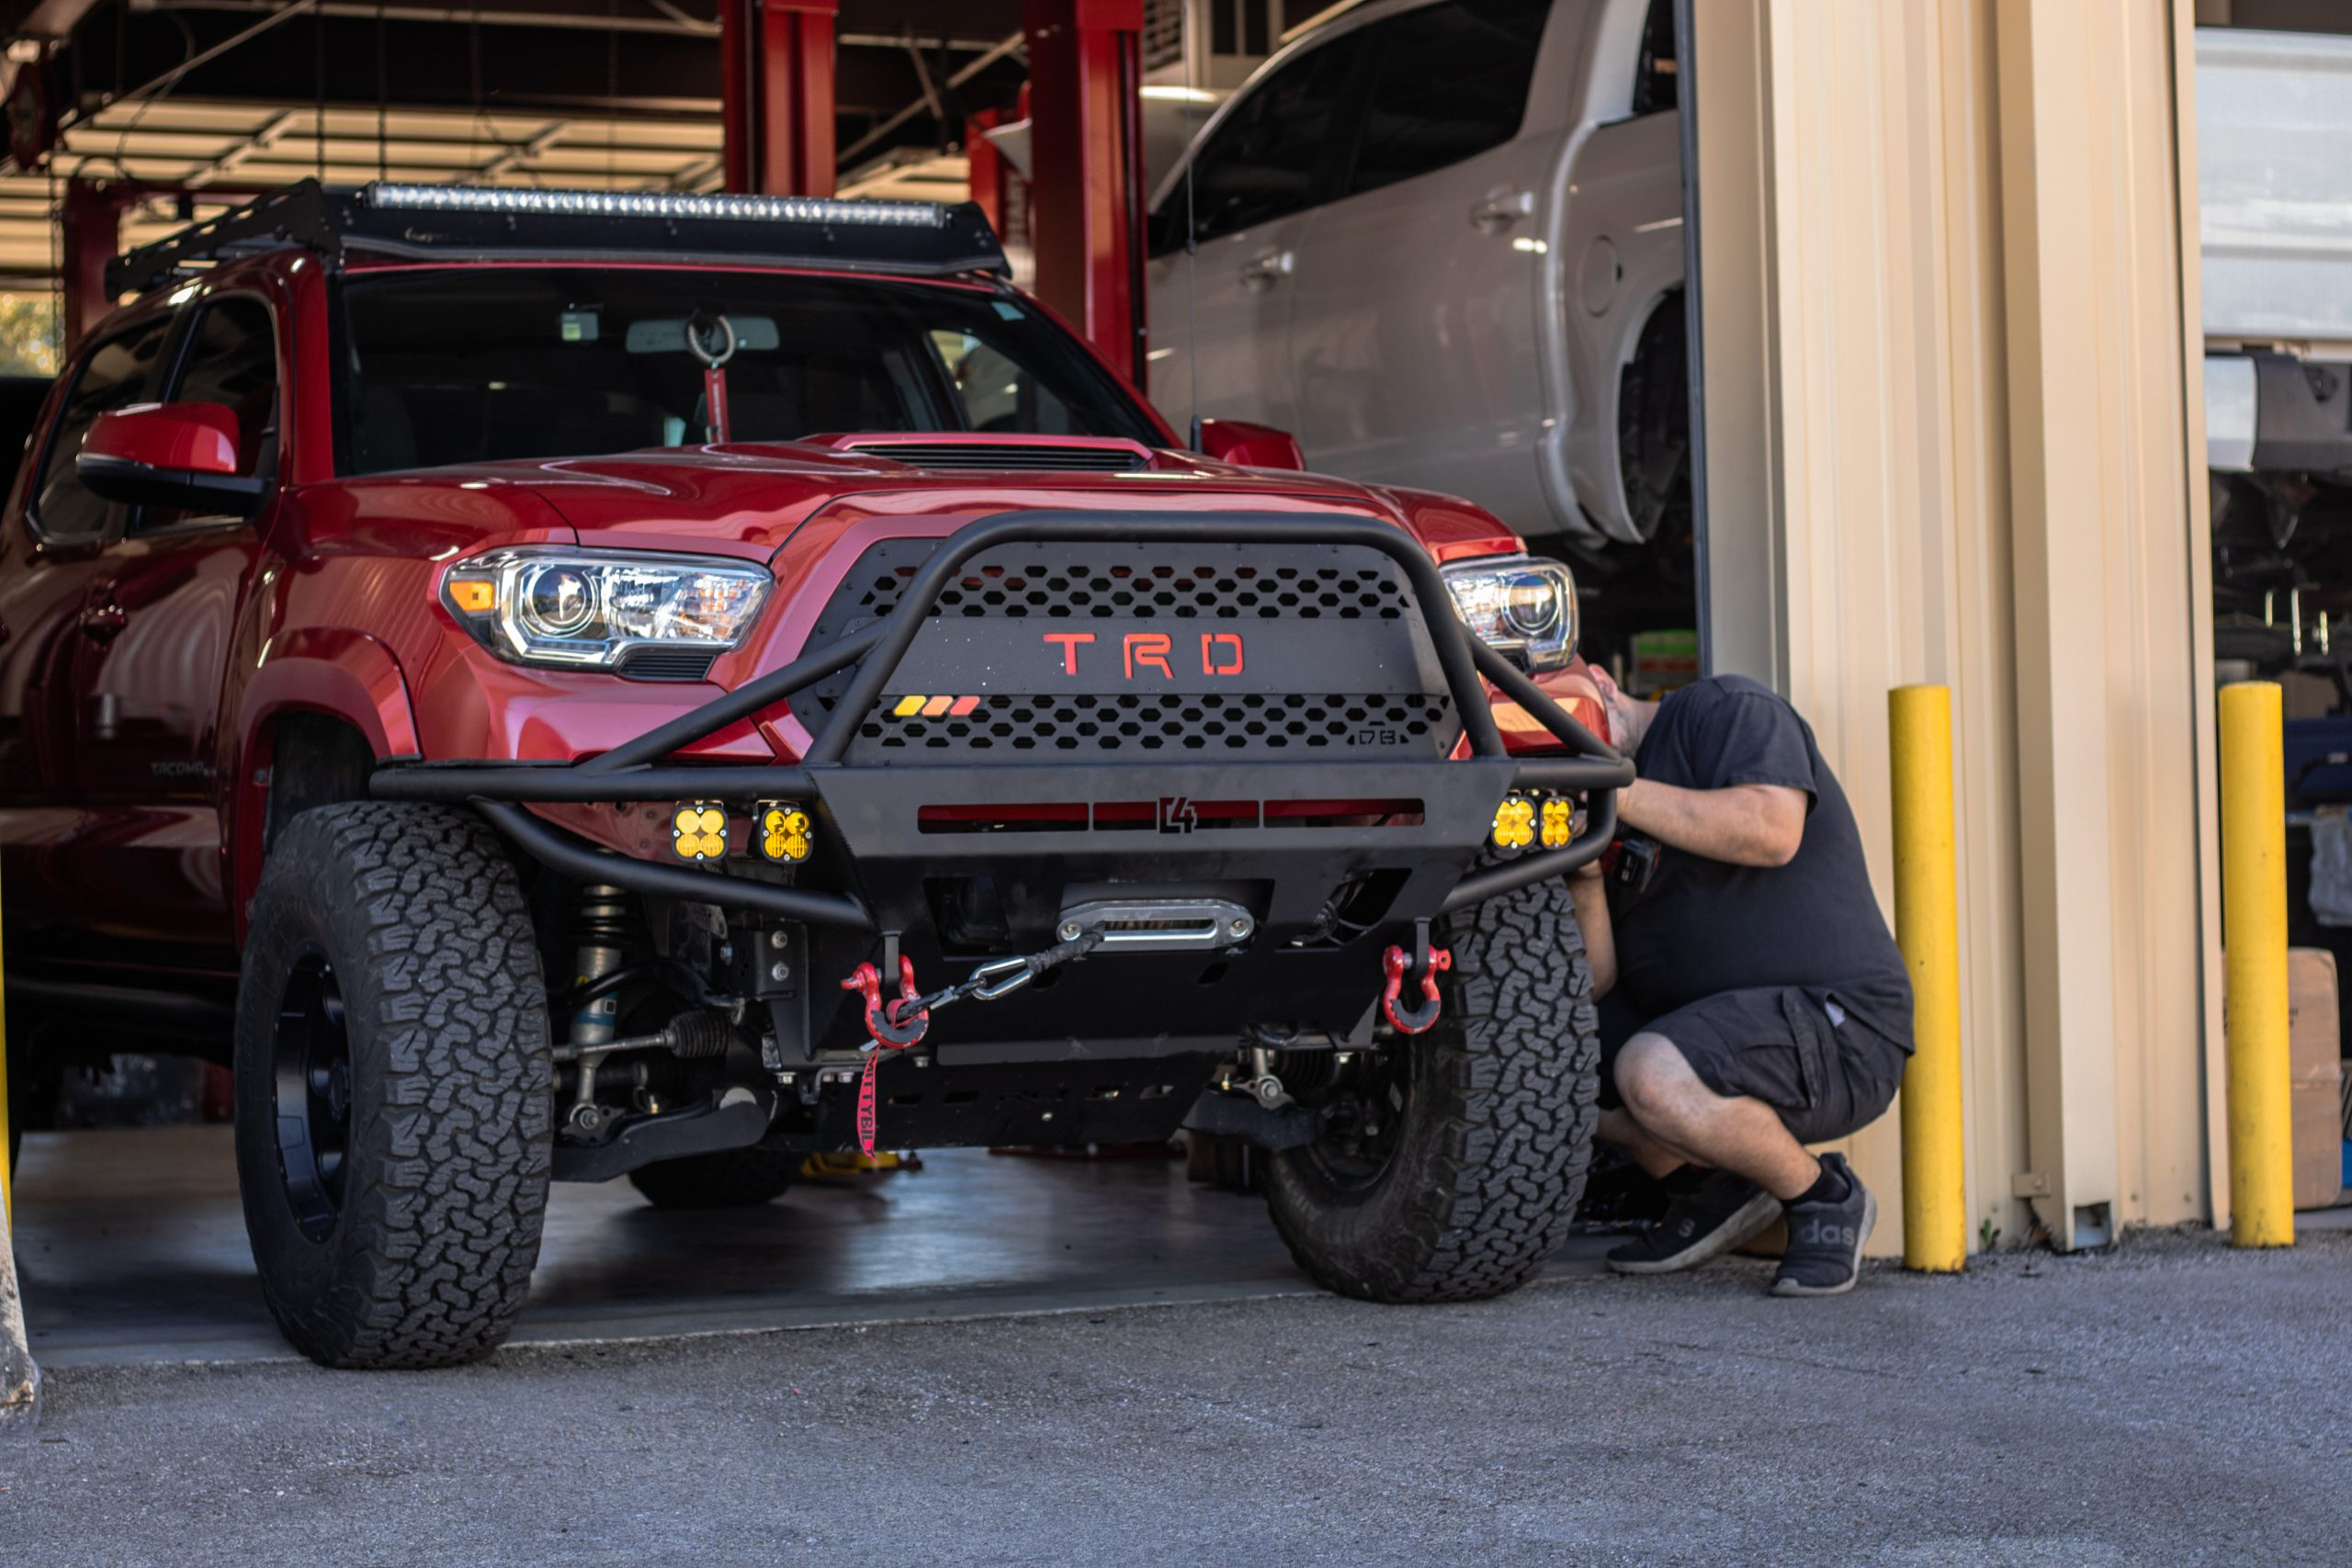 Outlaw Off-Road & Performance - Trusted Mechanic in San Antonio, Texas